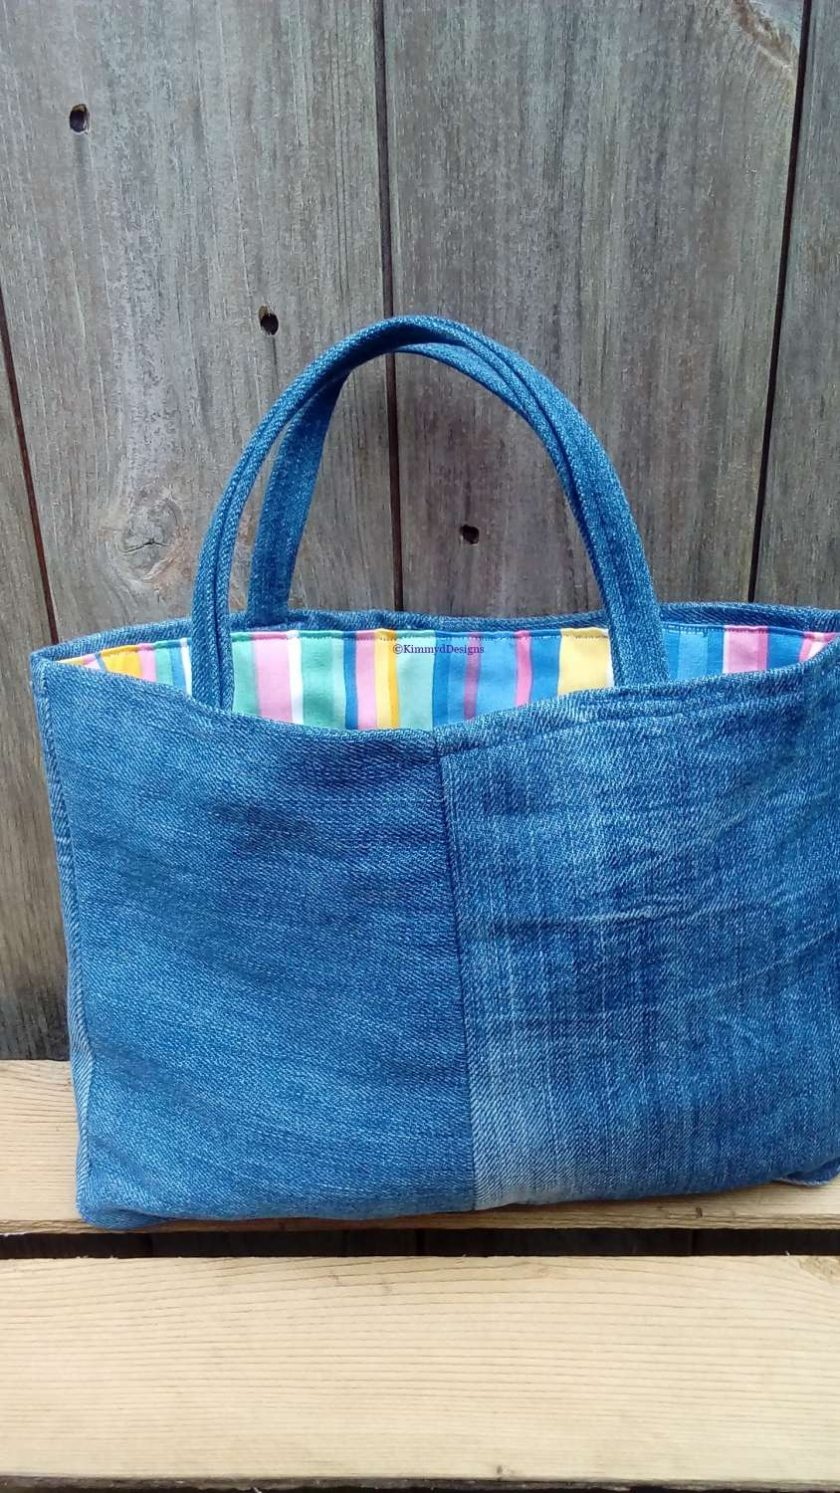 Kids Handbag (from recycled jeans) Lollipop Fully Lined Bag Gift Tote FREE UK POSTAGE 6